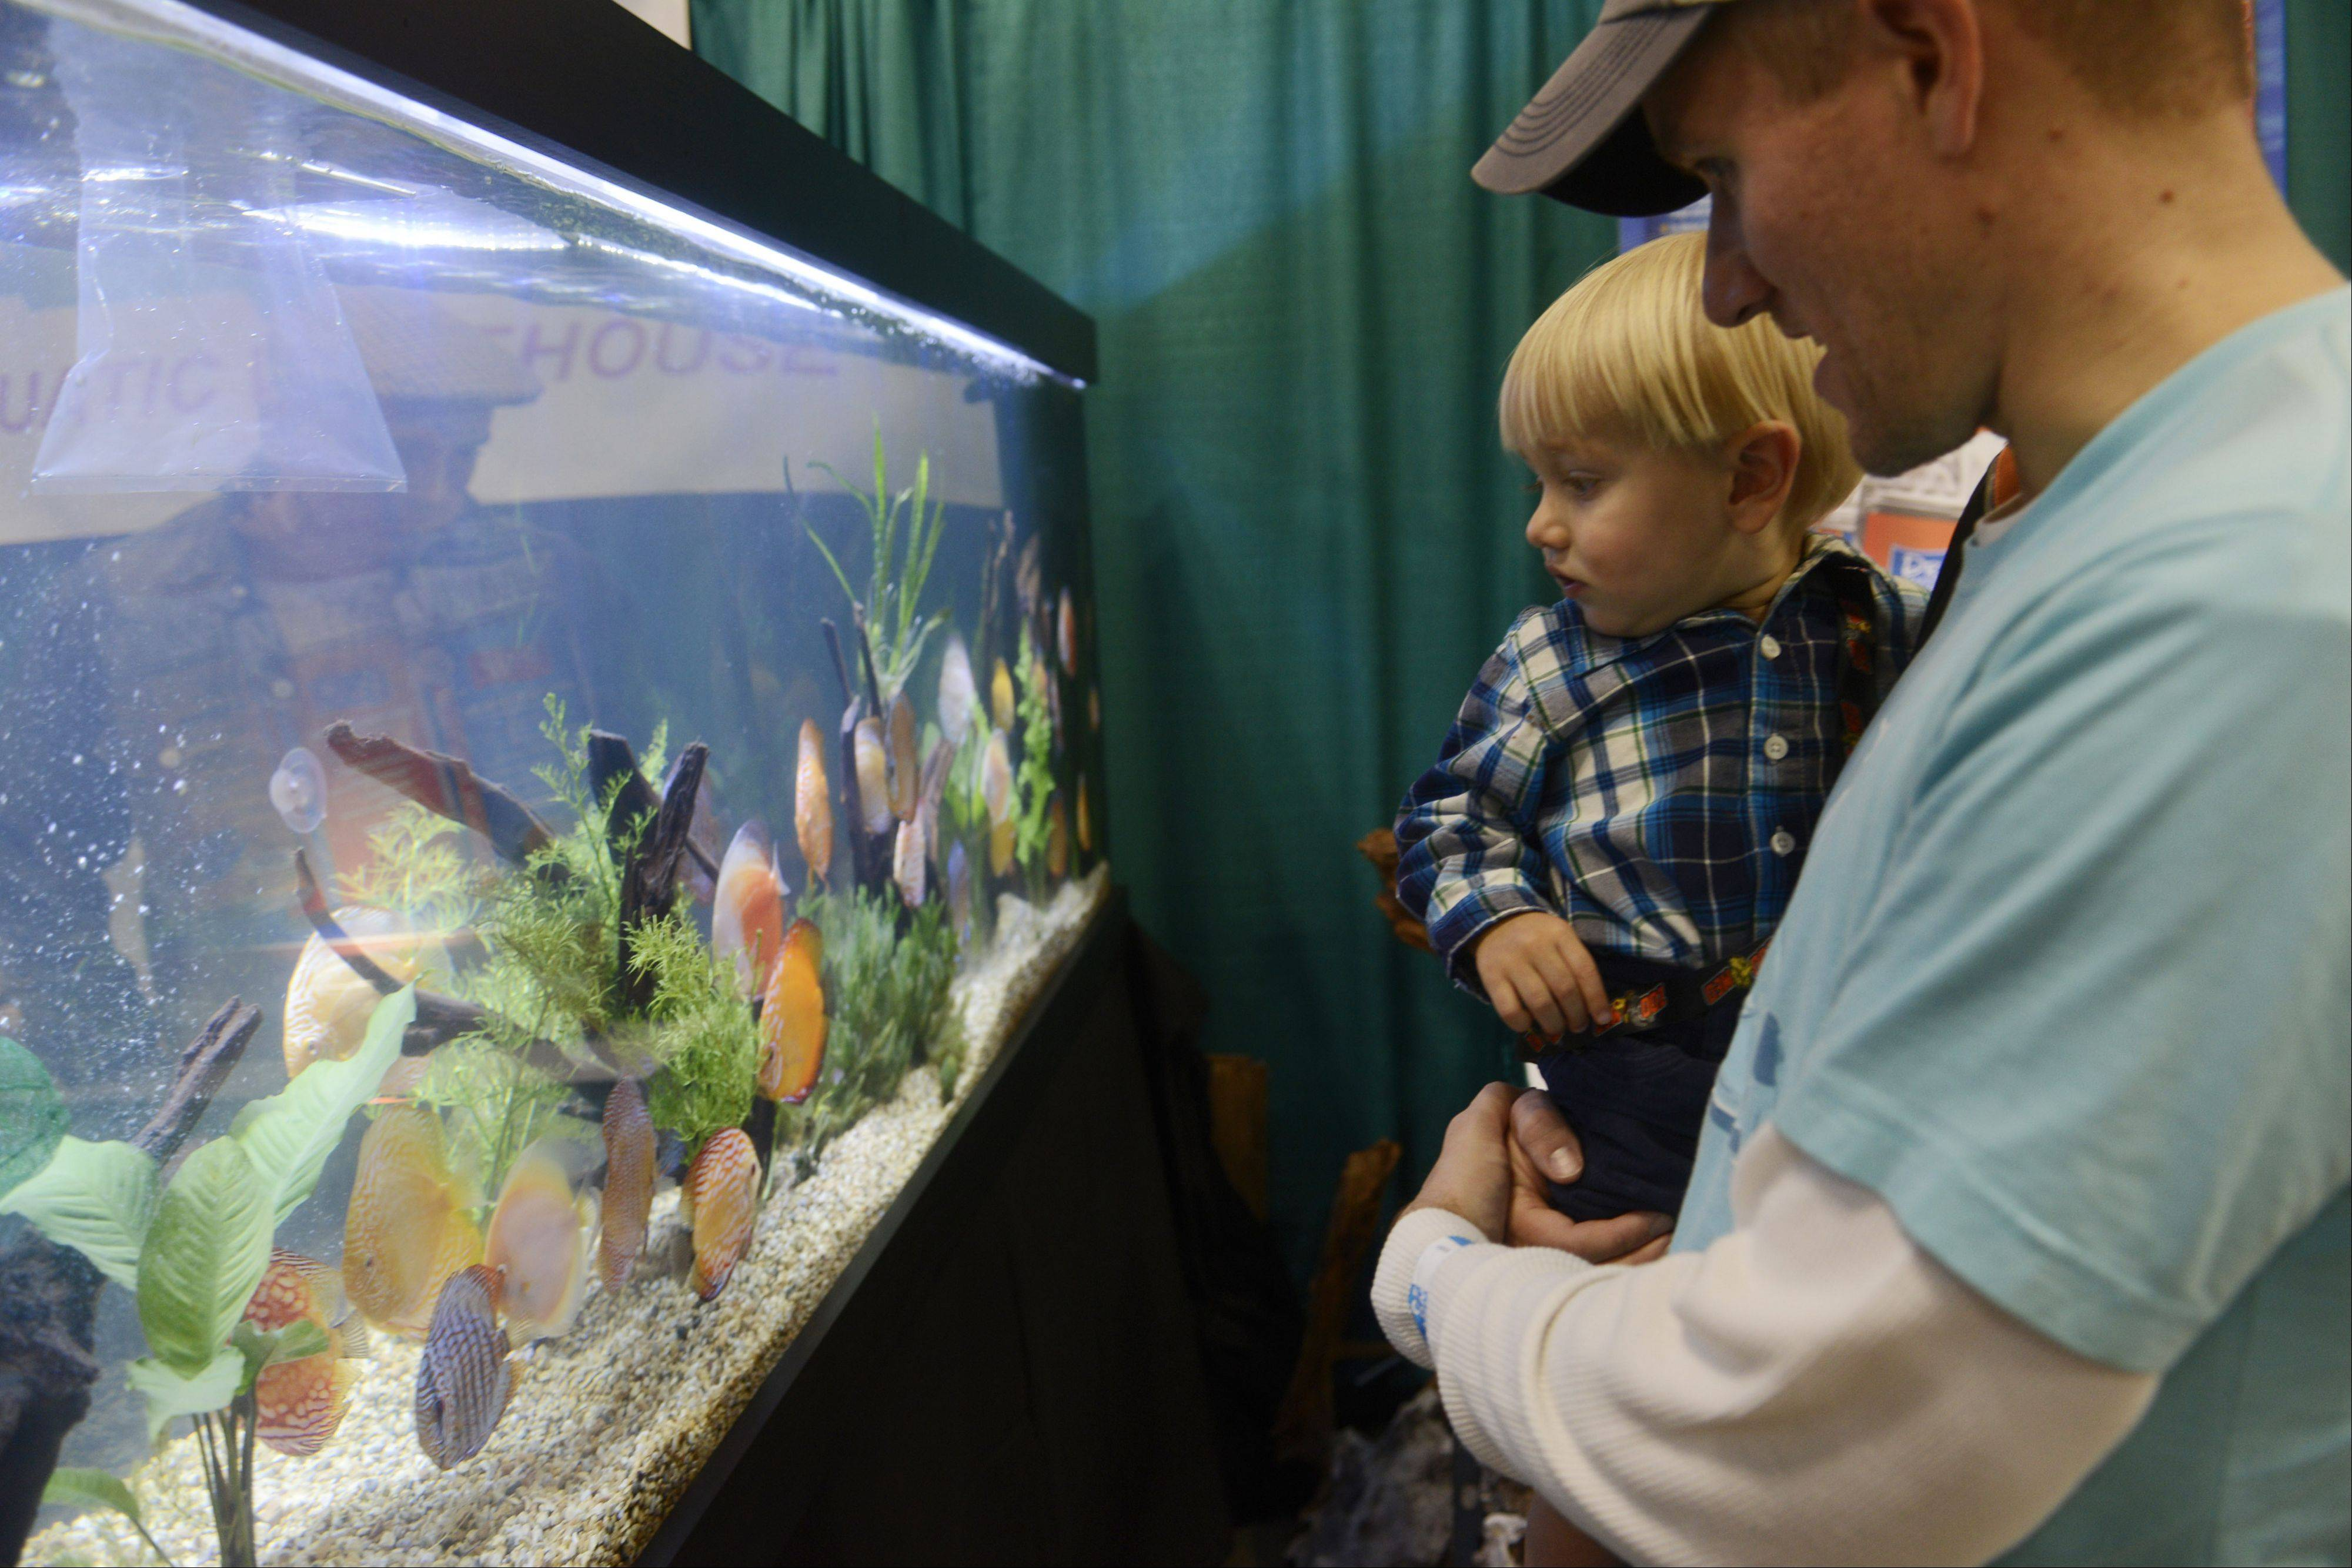 Jim Nielsen of Yorkville and his son Easton, 1, view discus fish displayed by Aqua Visions Aquatic Warehouse during the Chicago Aquatic Experience Show, held at the Renaissance Schaumburg Convention Center Saturday.